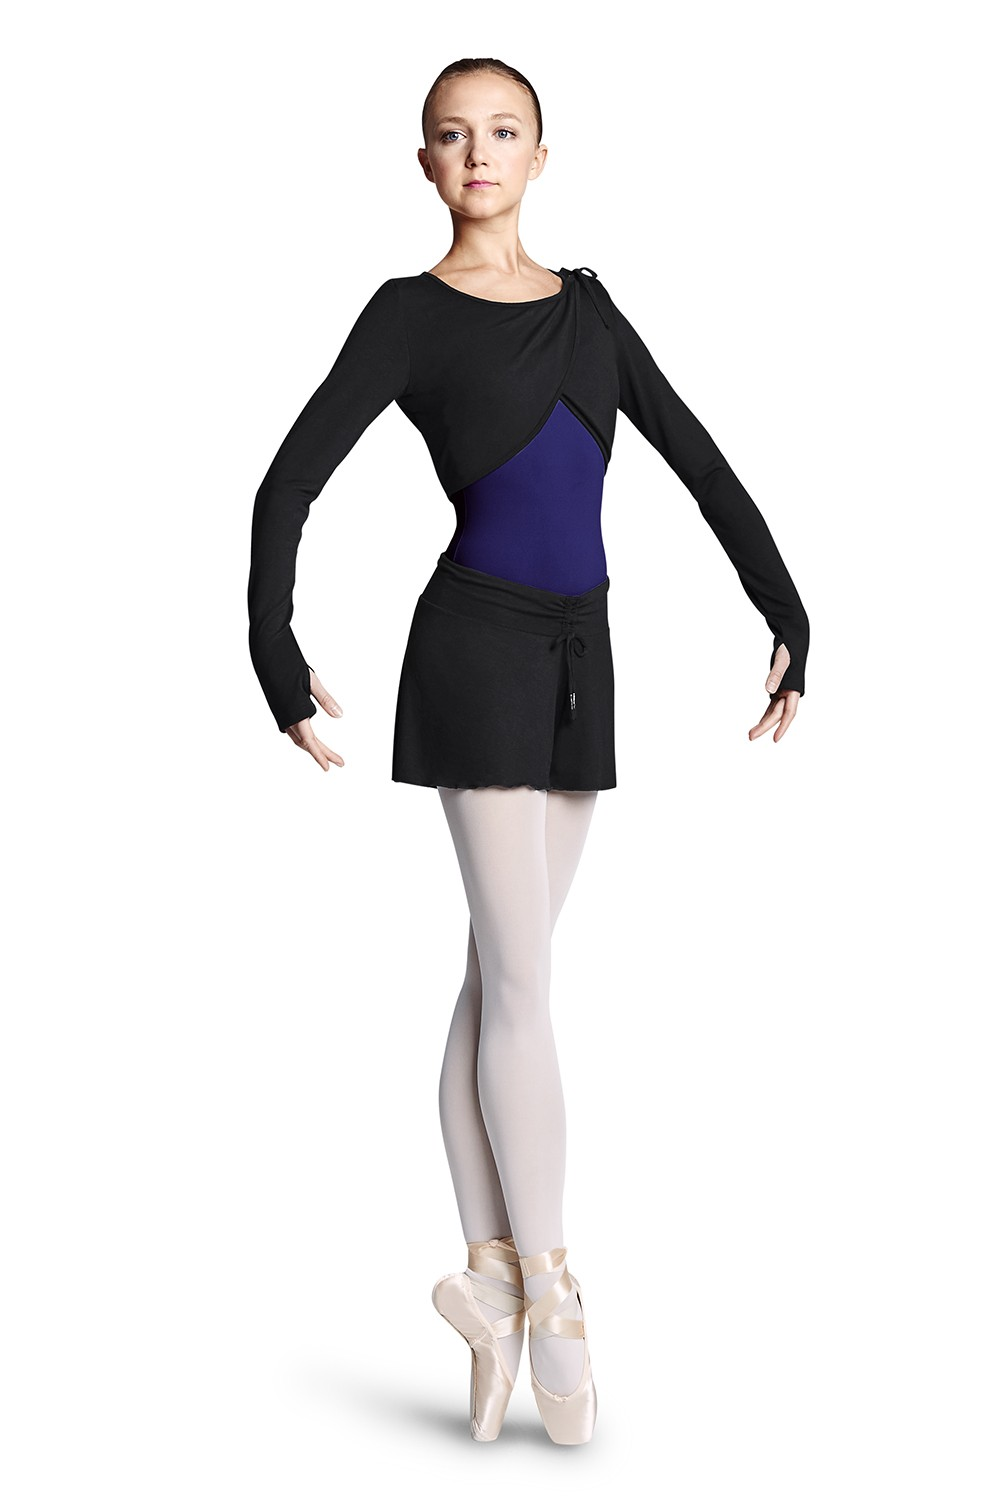 Wrap Top W/shldr Tie Women's Dance Tops